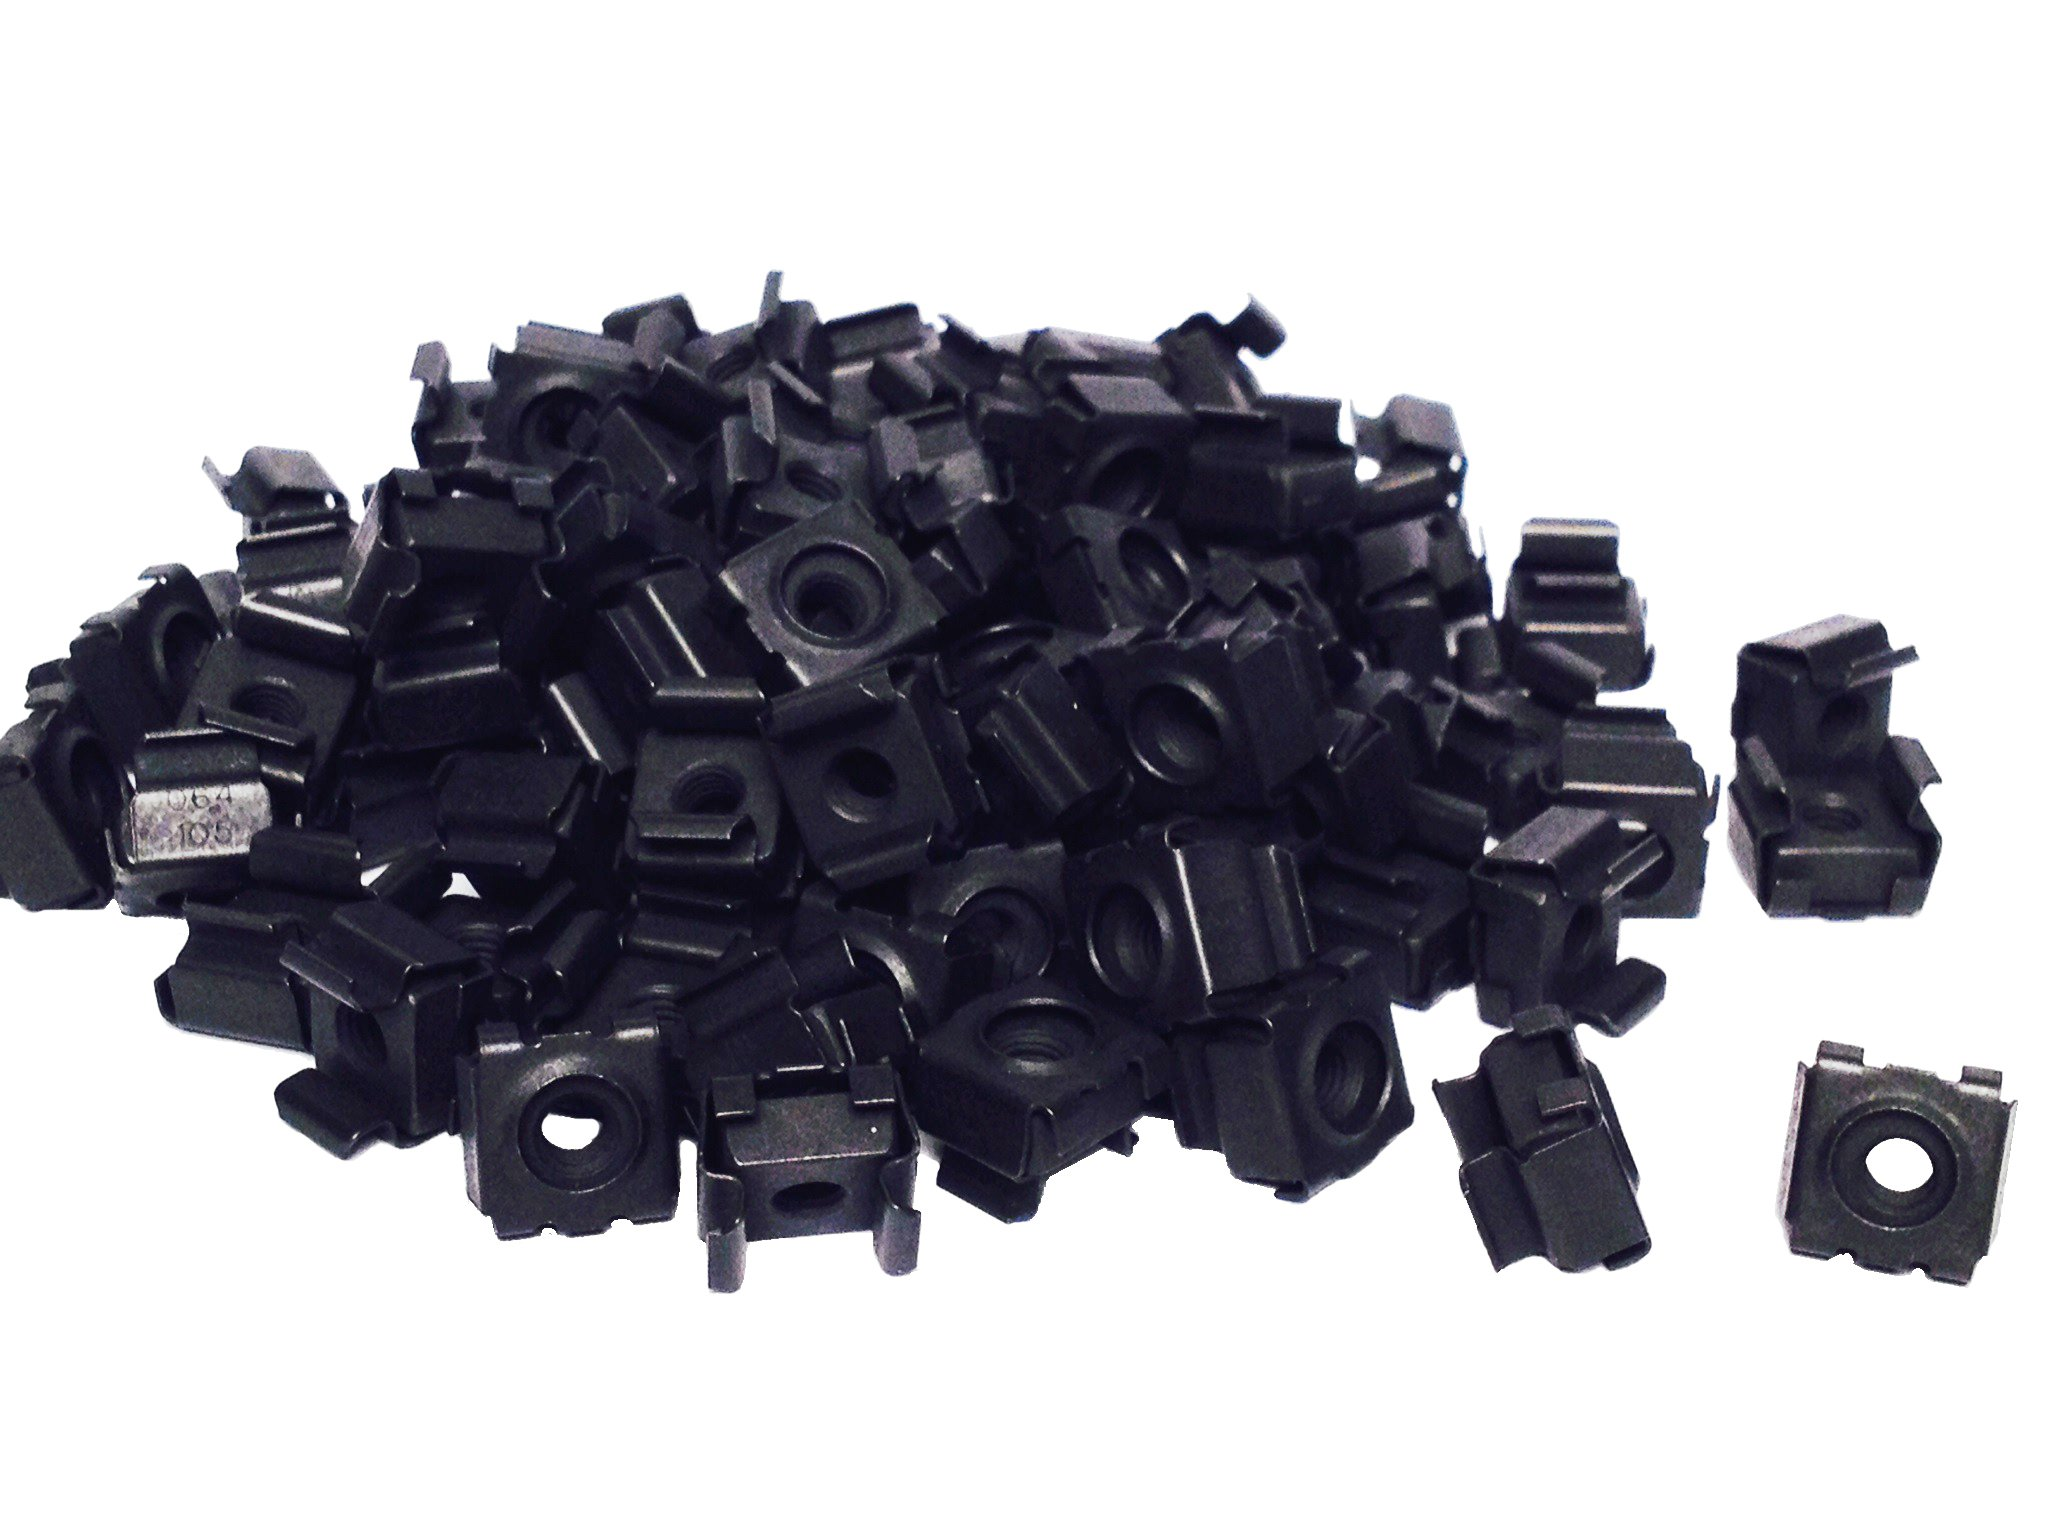 RackGold Black 12-24 Cage Nuts 100 Pack - USA Made & by RackGold